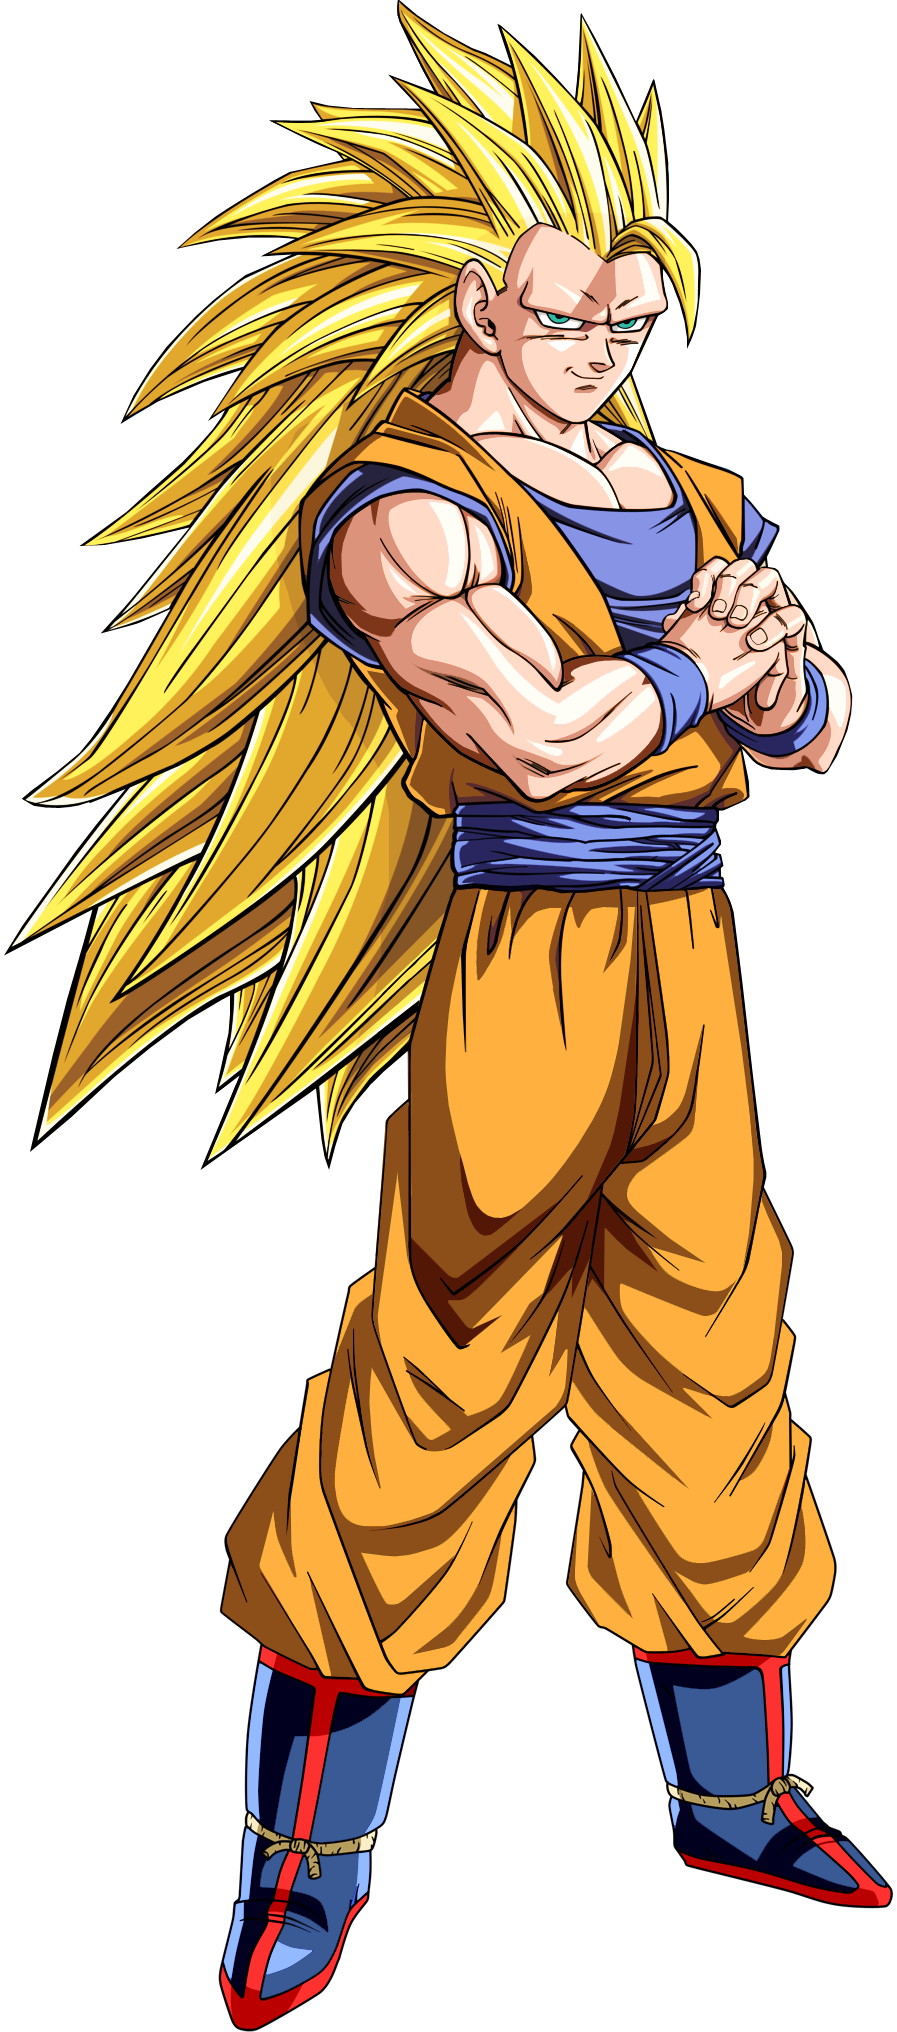 Png dragon ball. Tremendas imagenes de z